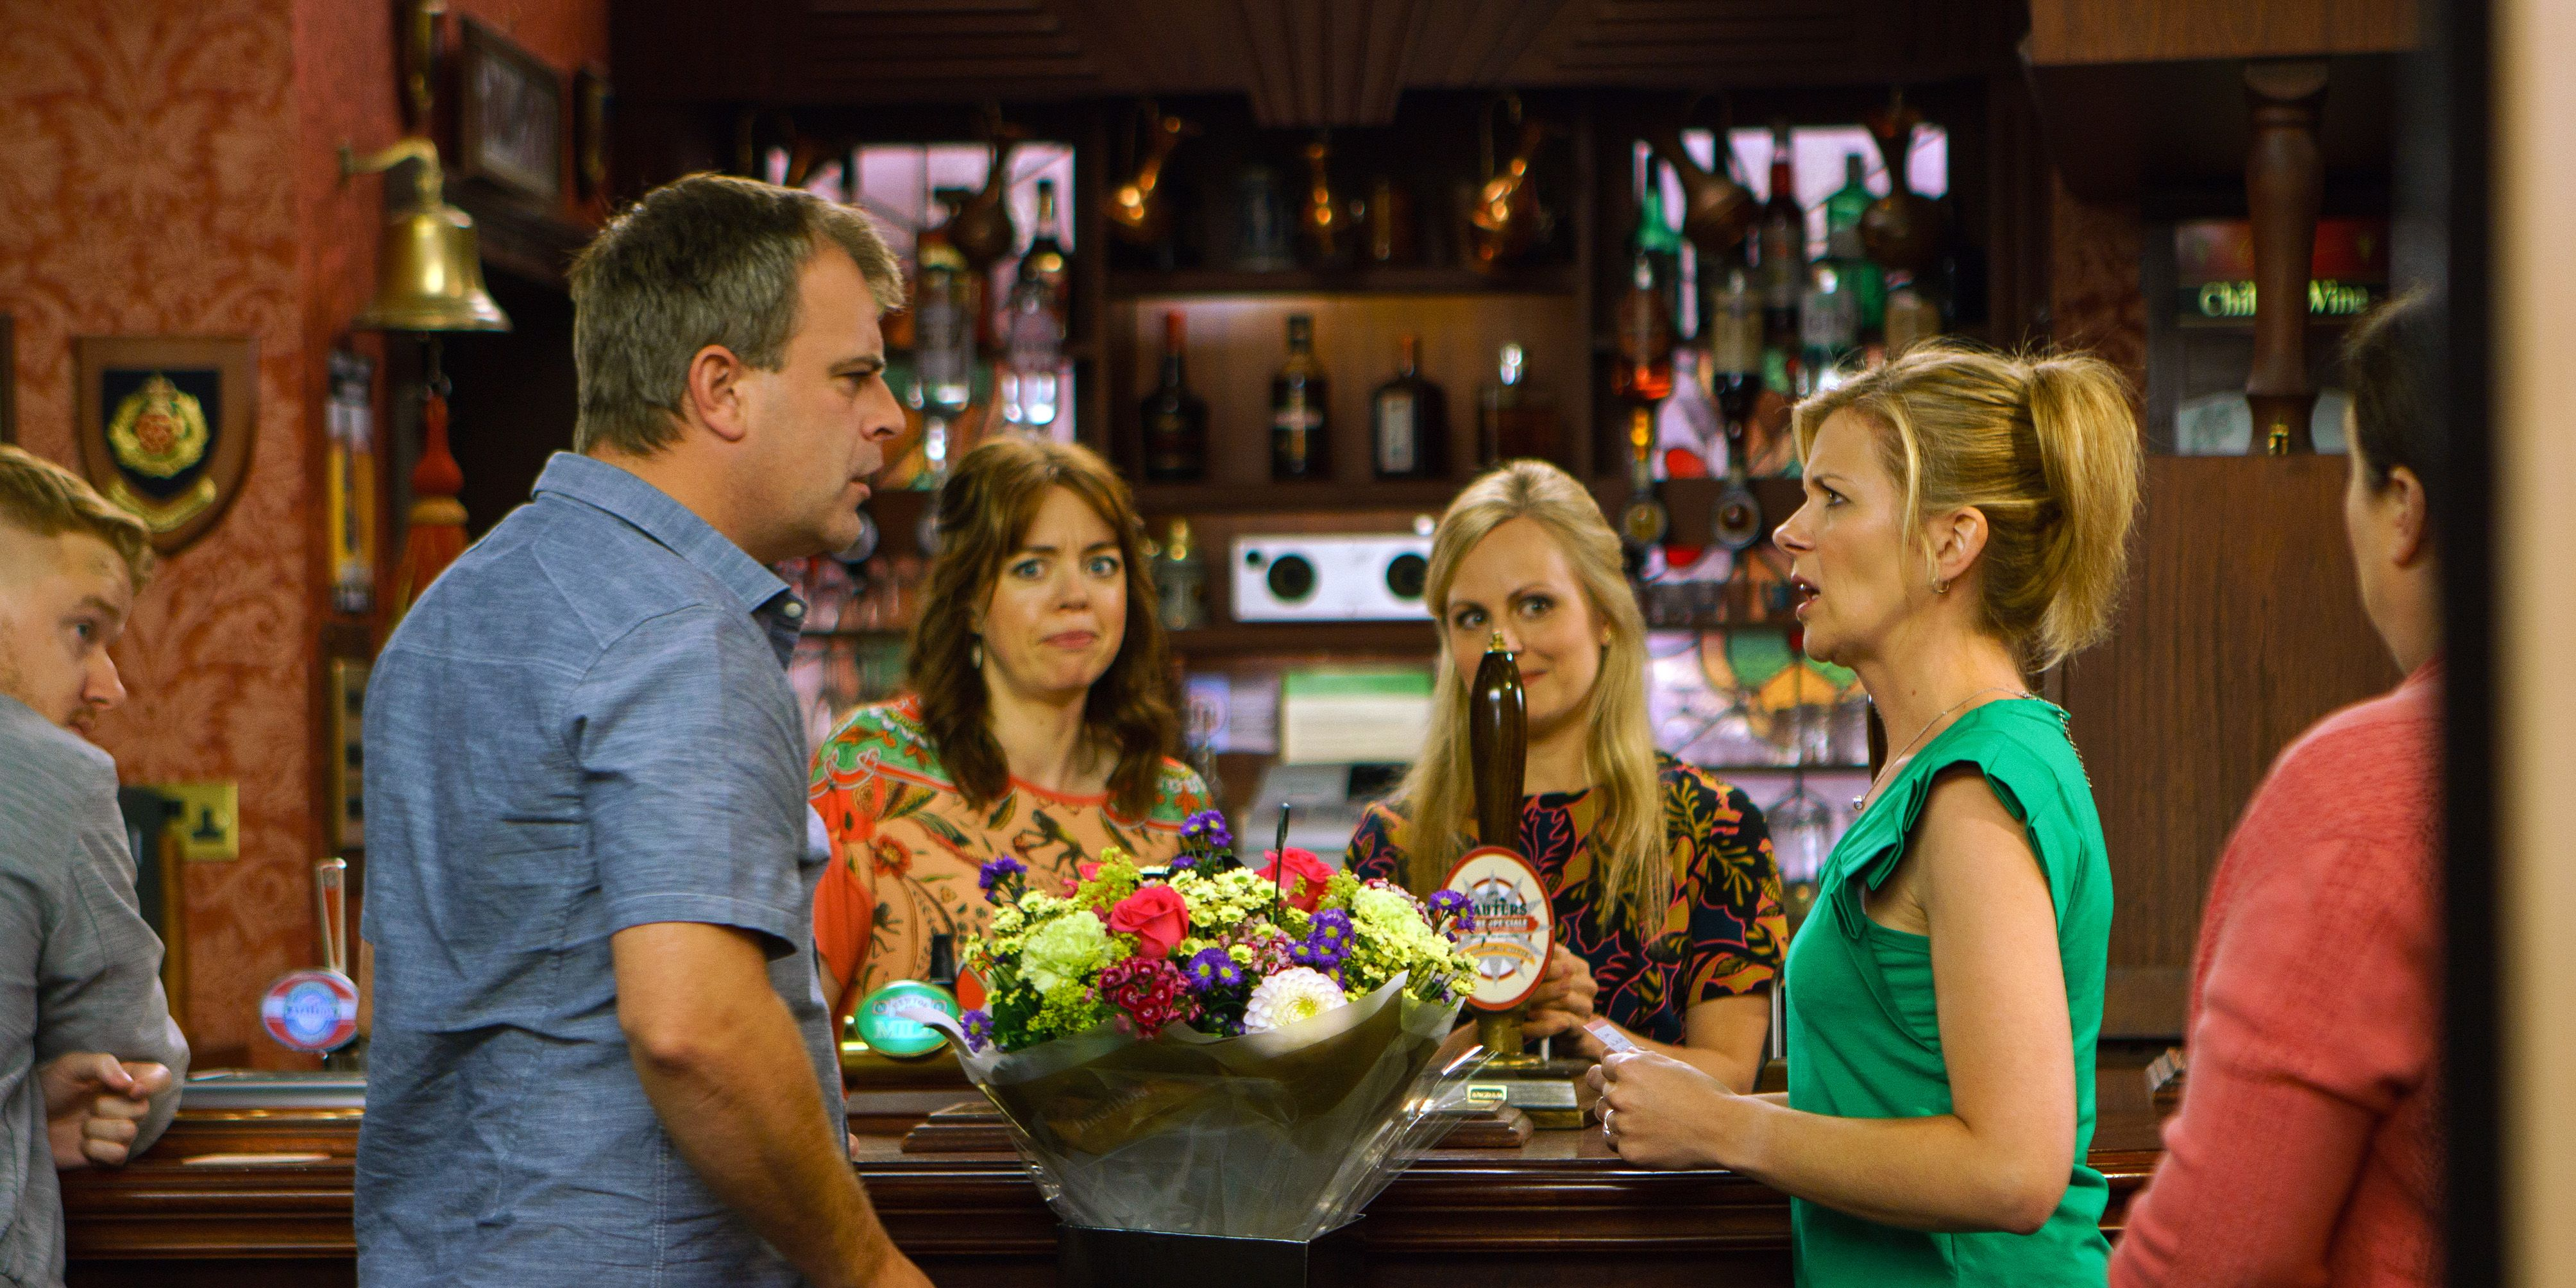 Steve McDonald and Leanne Battersby remain centre of attention in Coronation Street